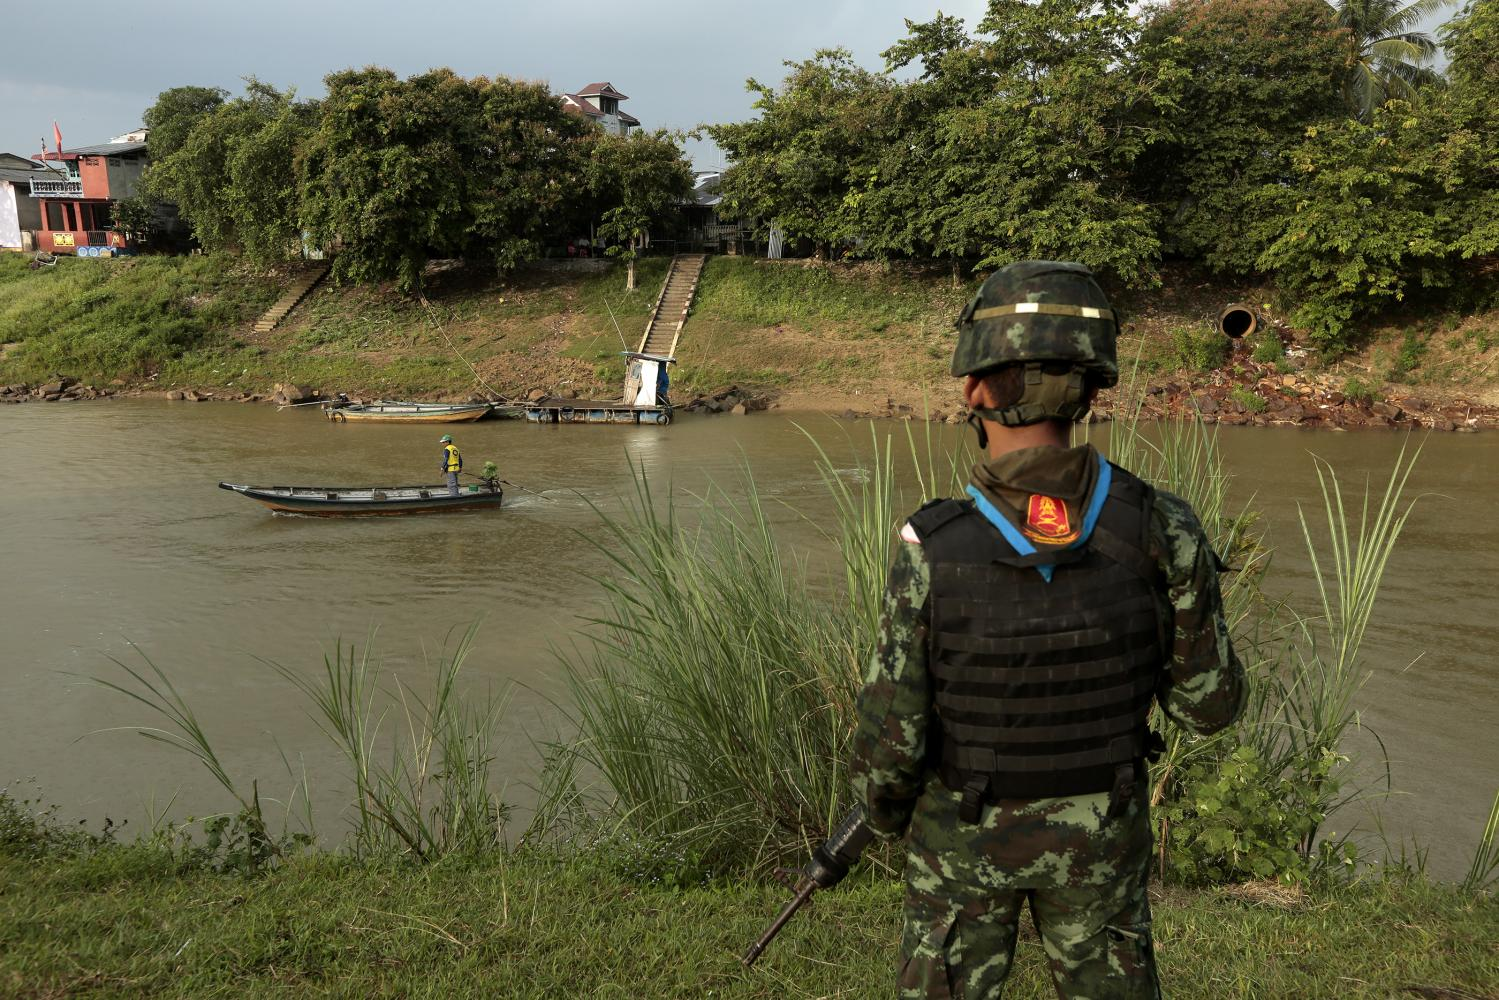 ON PATROL: Troops are deployed along the Kolok River in Narathiwat's Sungai Kolok district. The river is a natural borderline between Thailand and Malaysia.